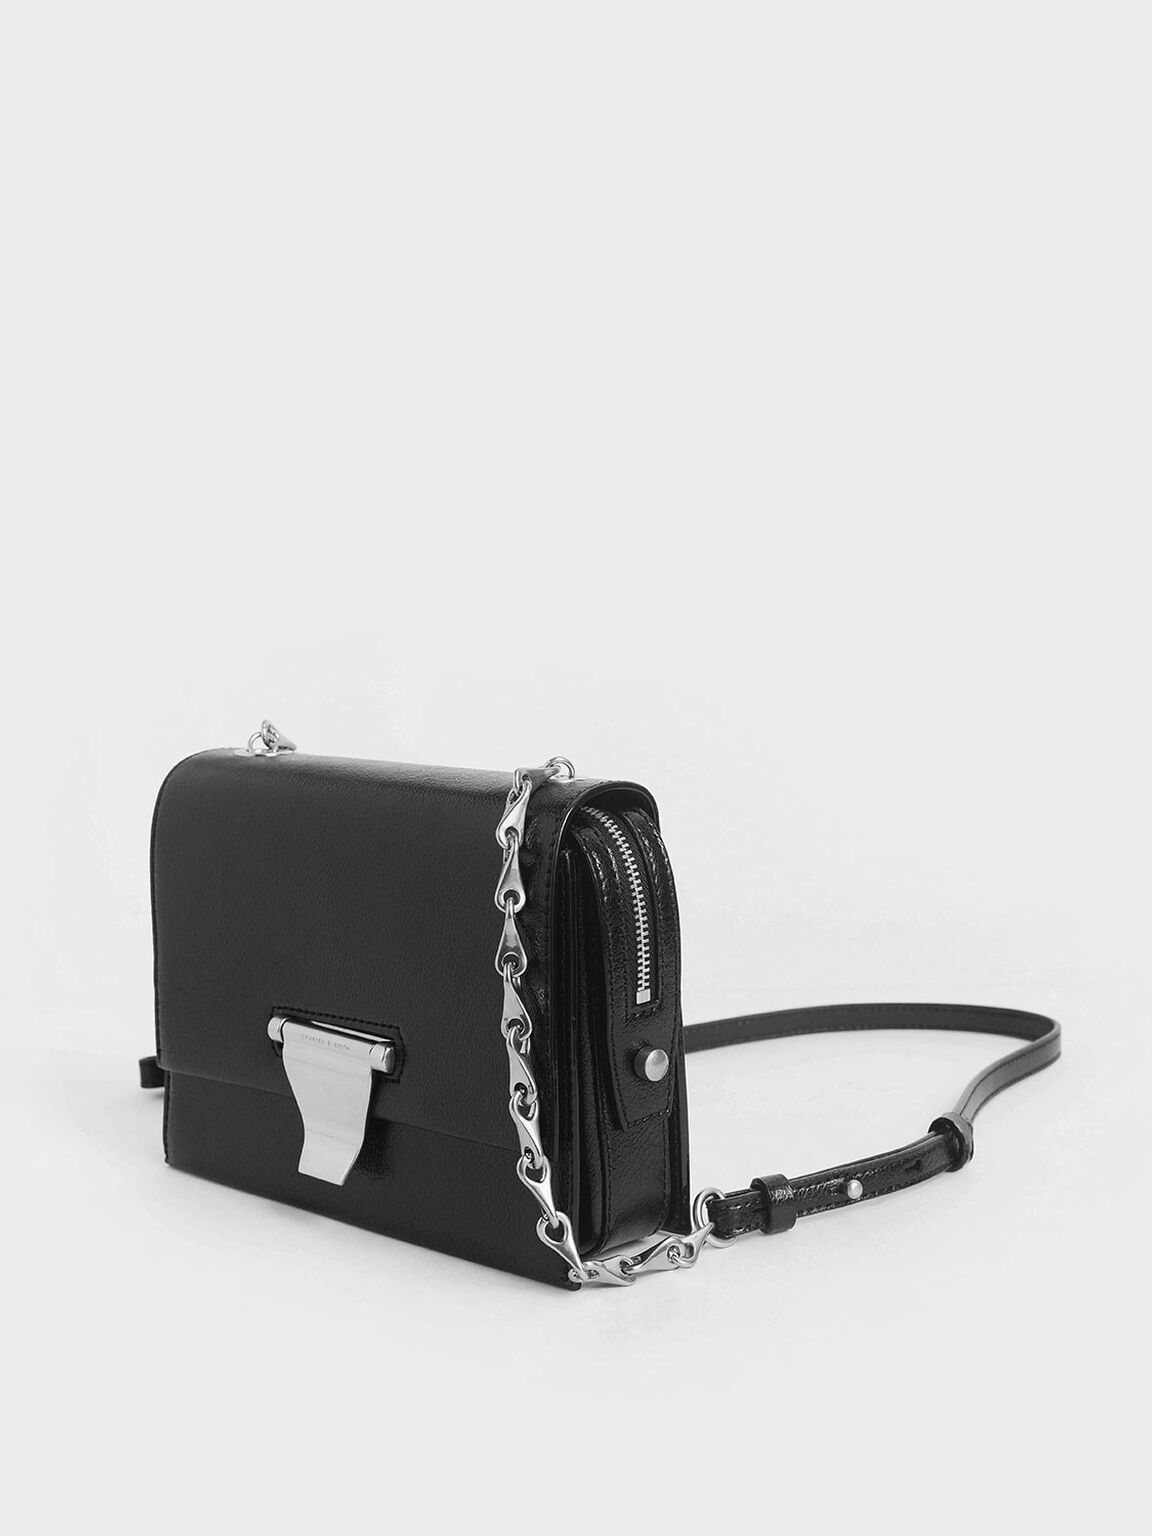 Metal Push-Lock Crossbody Bag, Black, hi-res